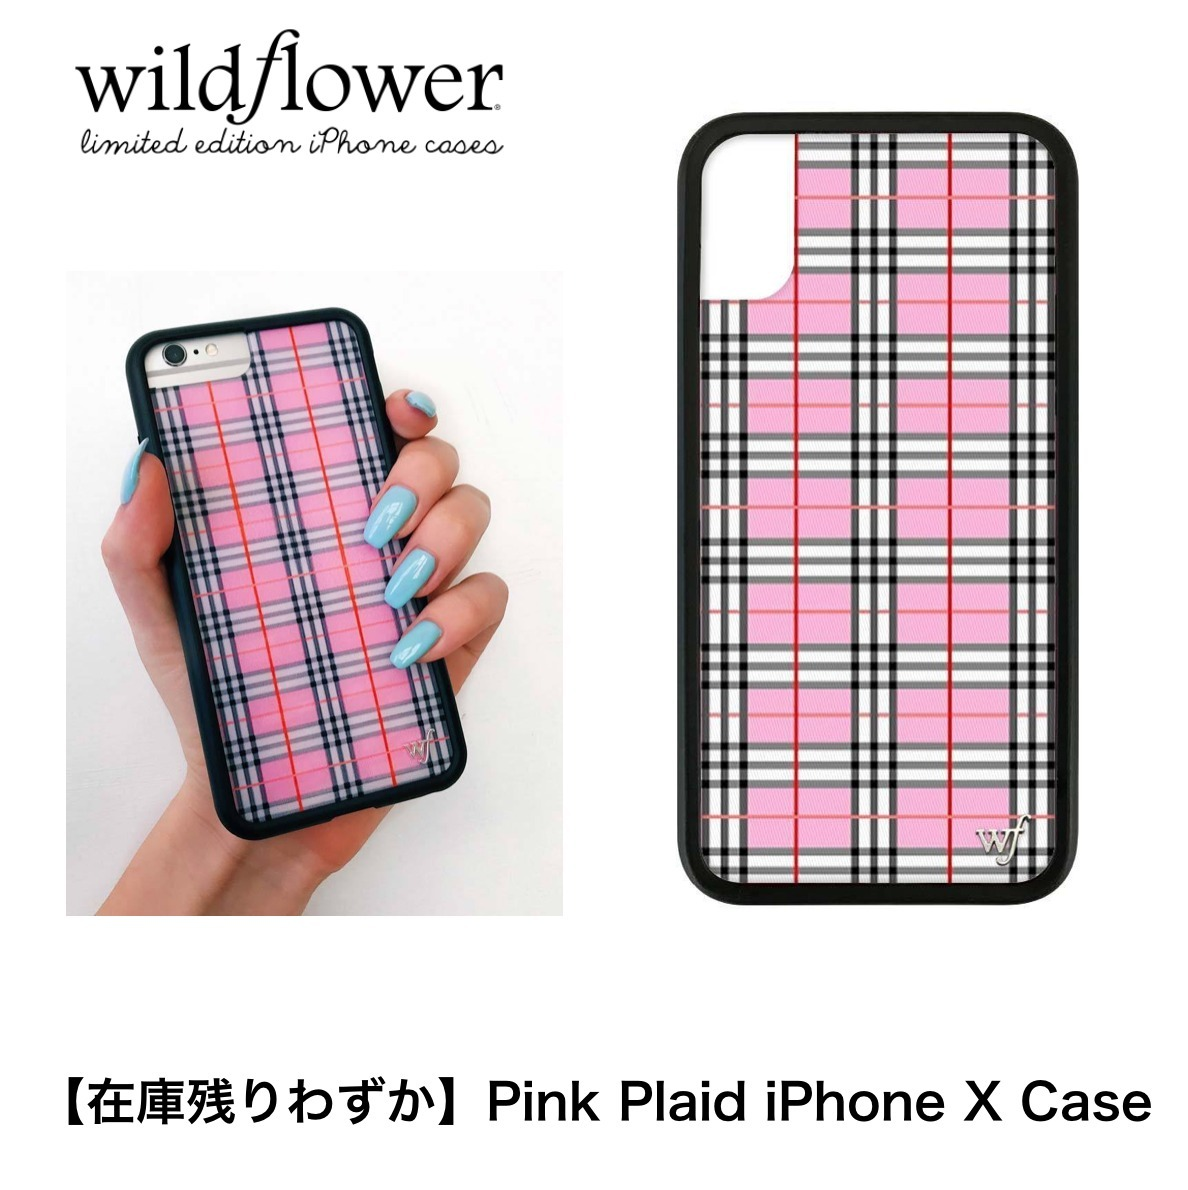 ★在庫残りわずか★【Wildflower】Pink Plaid iPhone X ケース